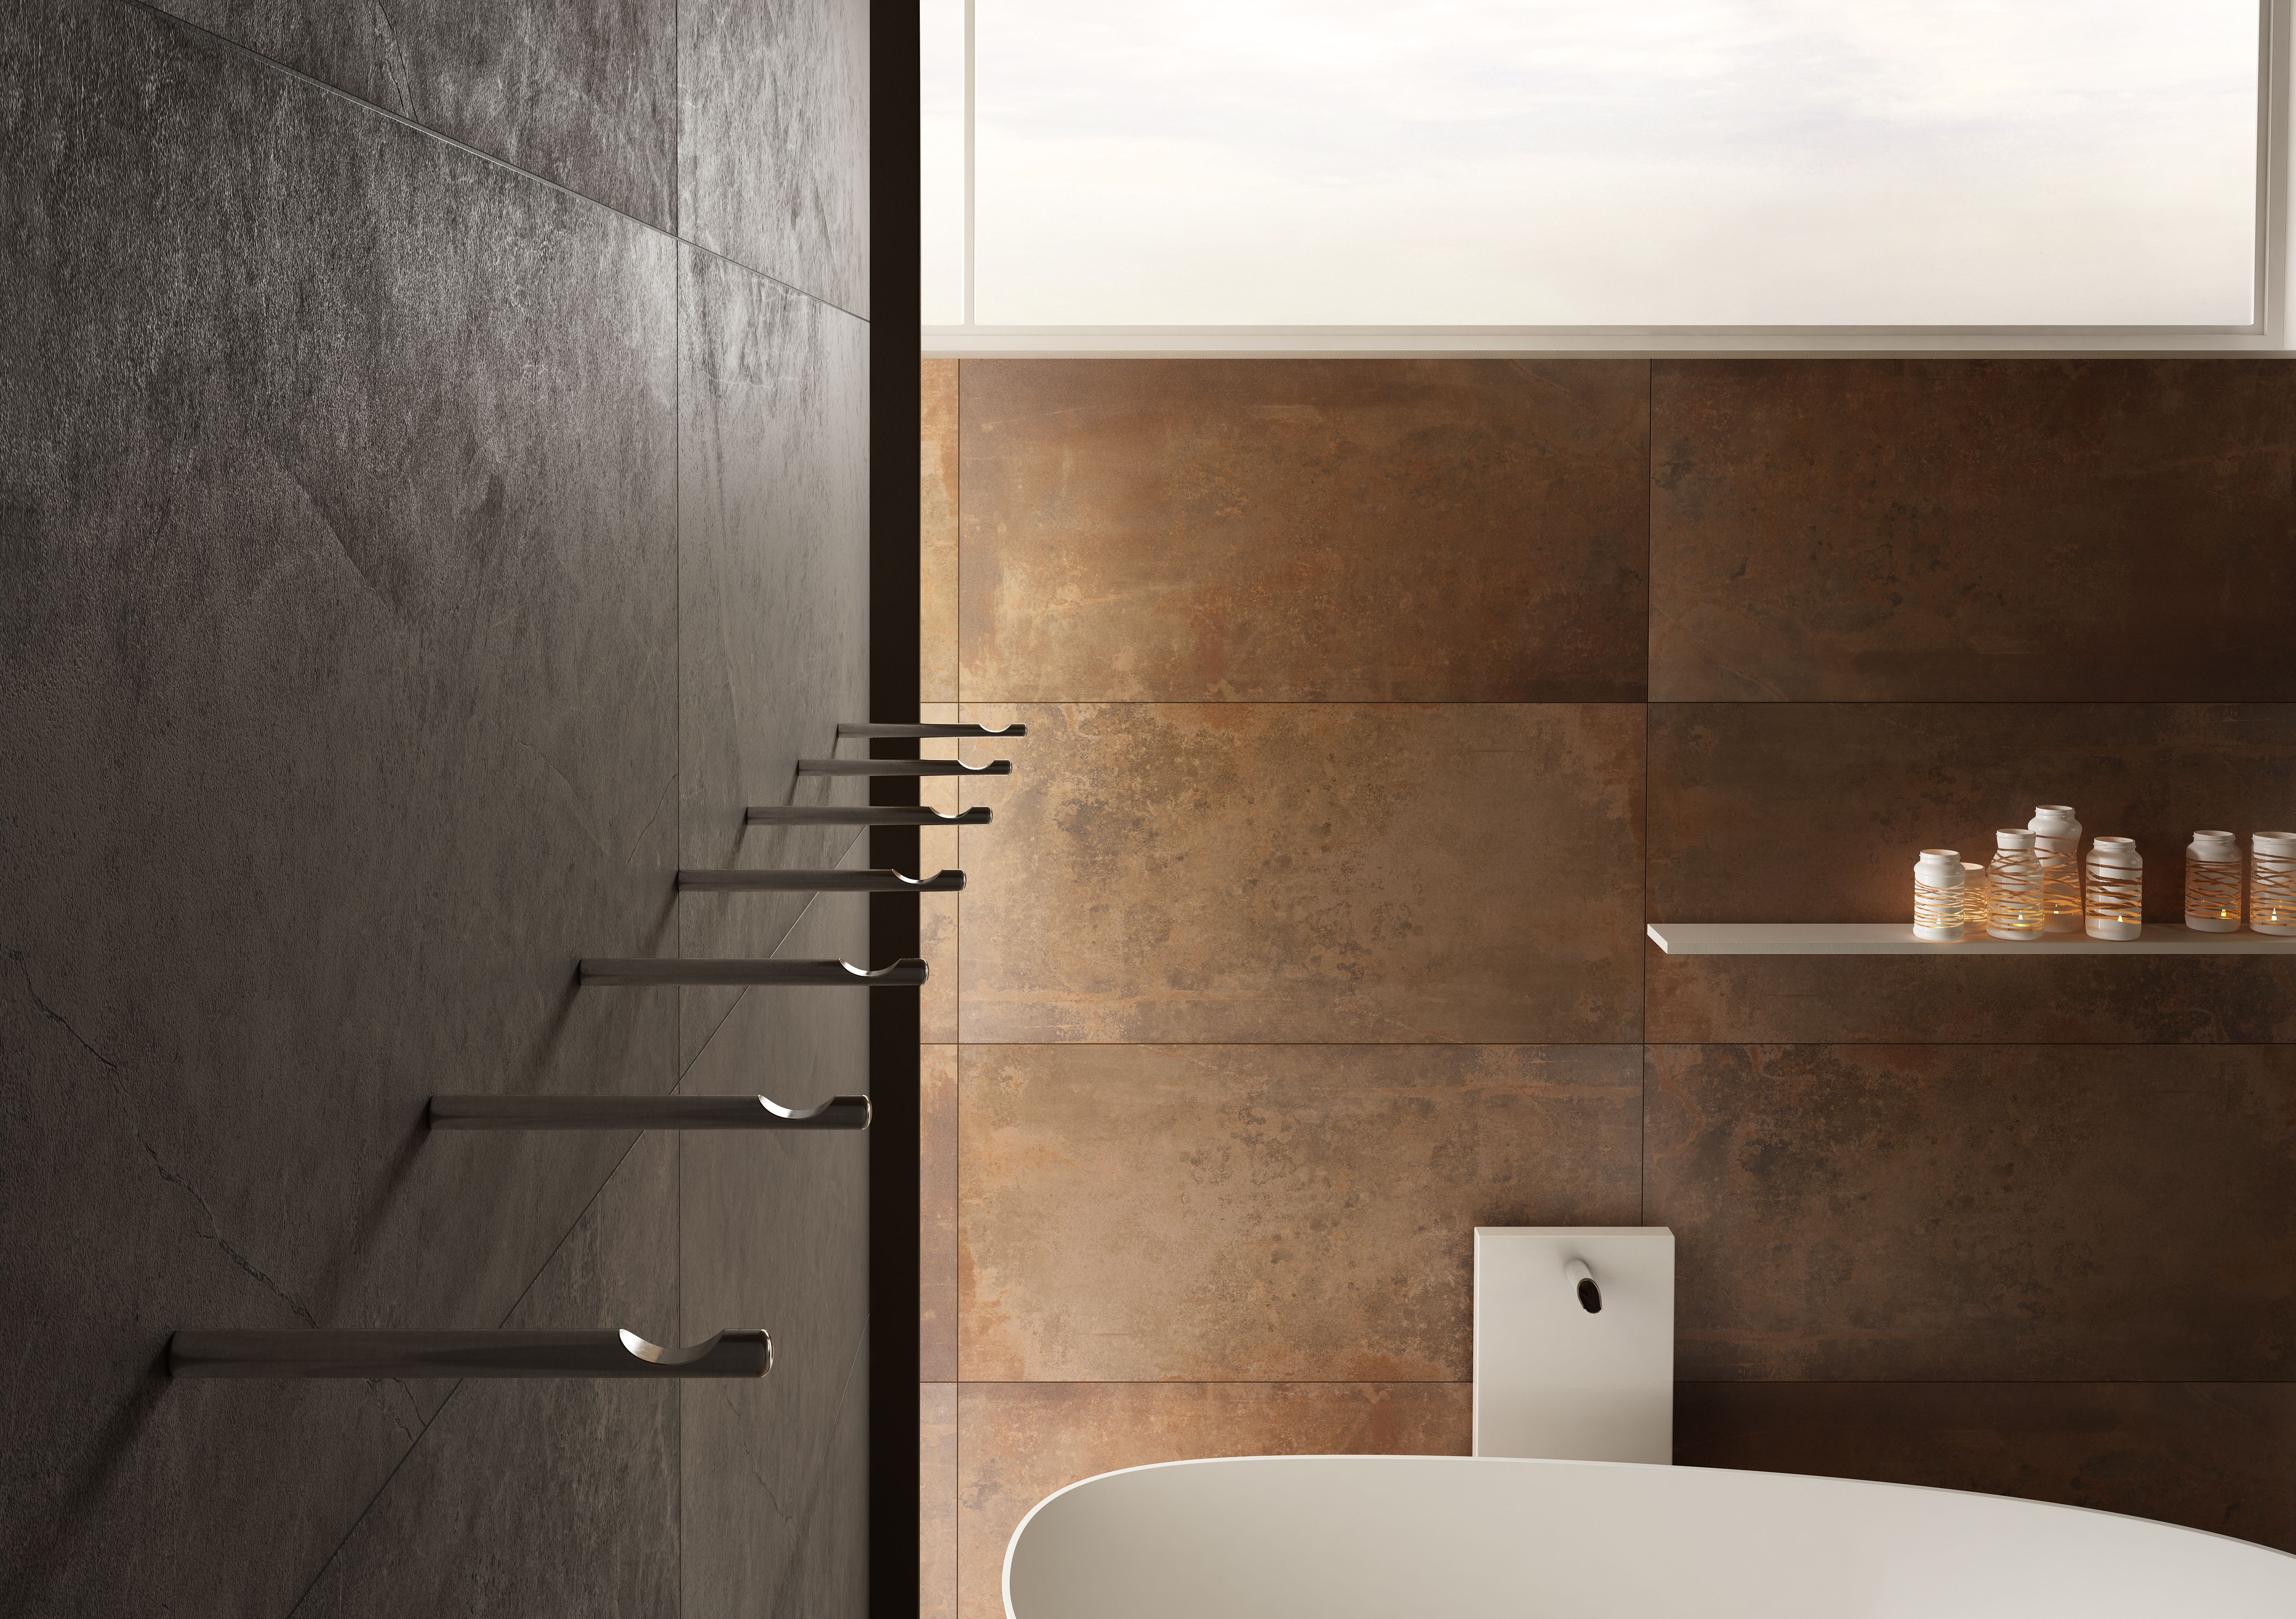 Lamiera T 600x600 Porcelain Tile Collection With A True Character